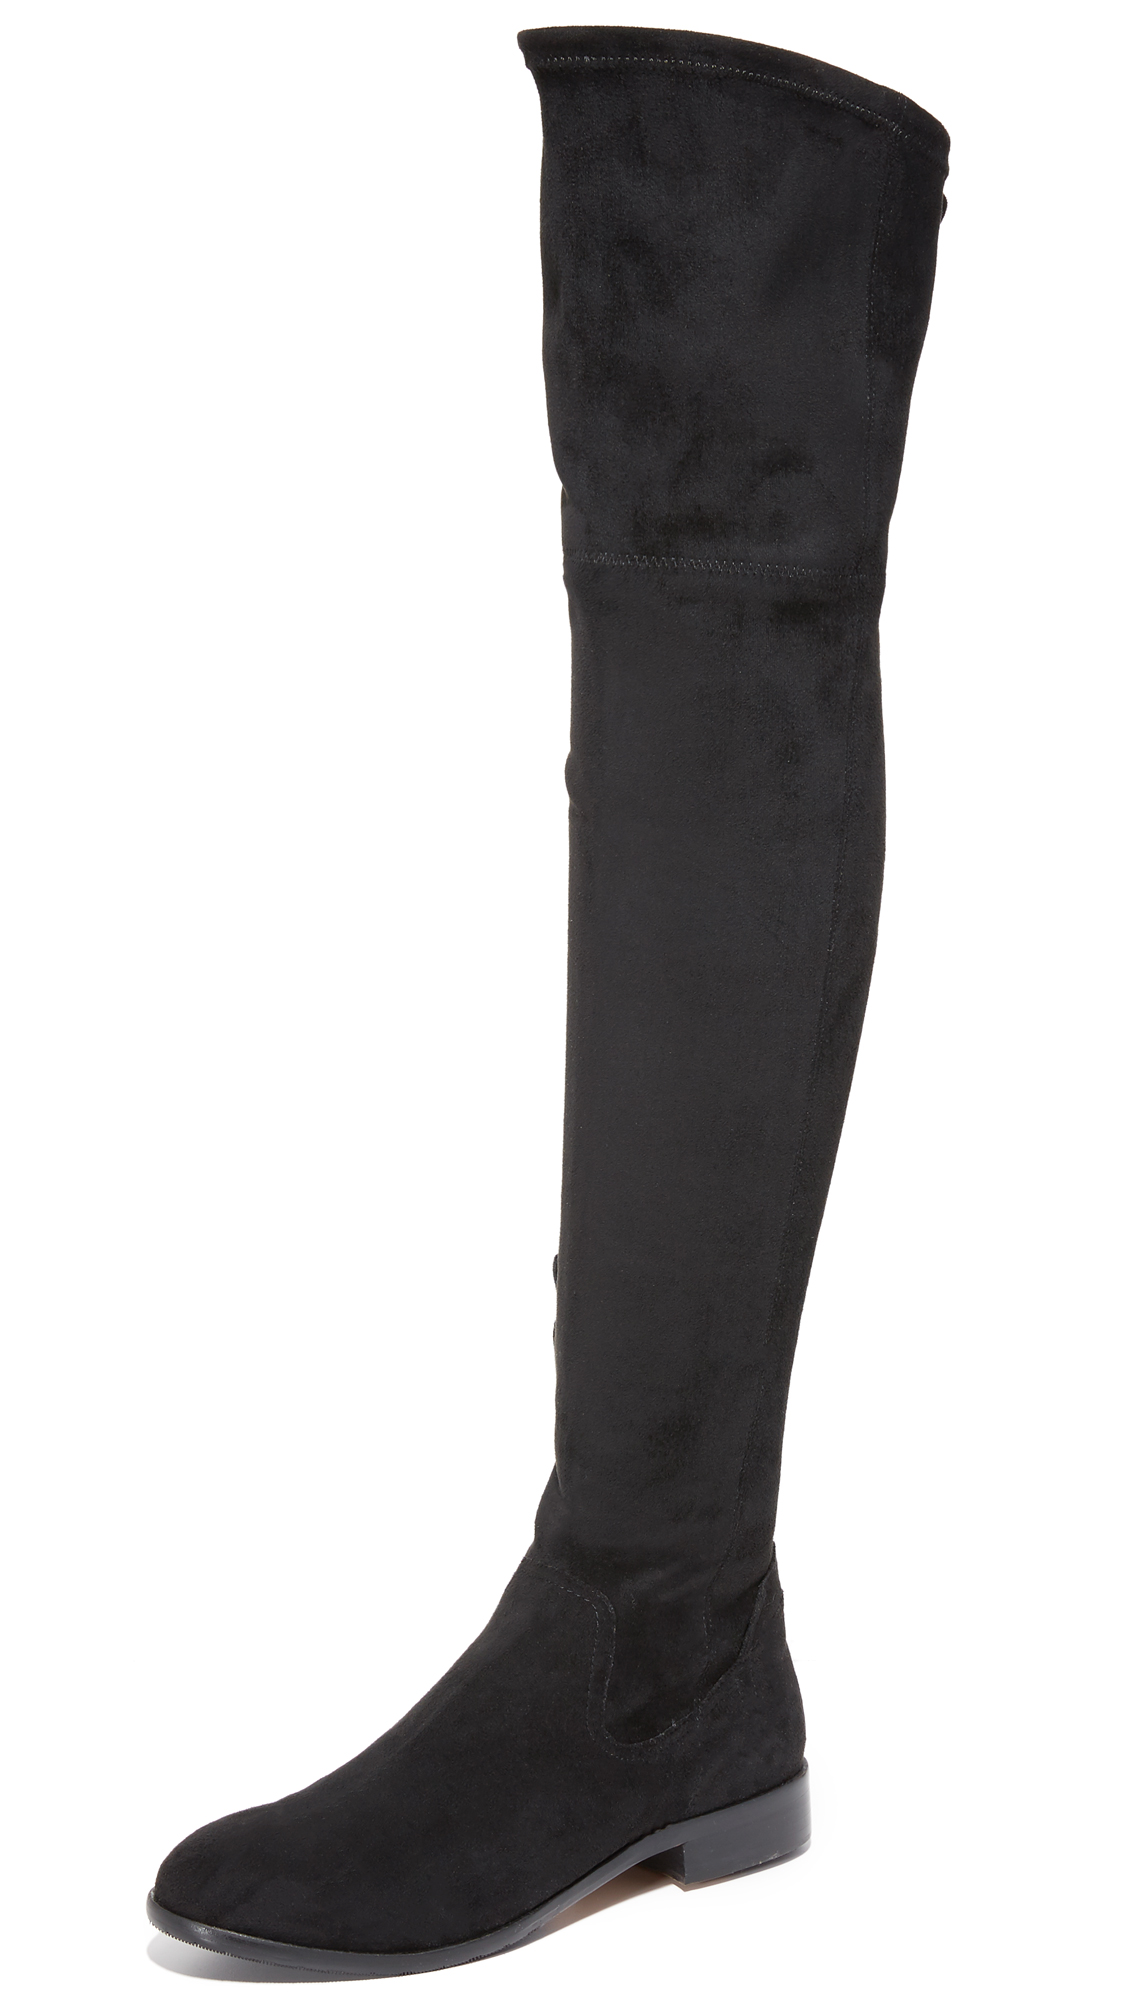 Dolce Vita Neely Over The Knee Boots - Black